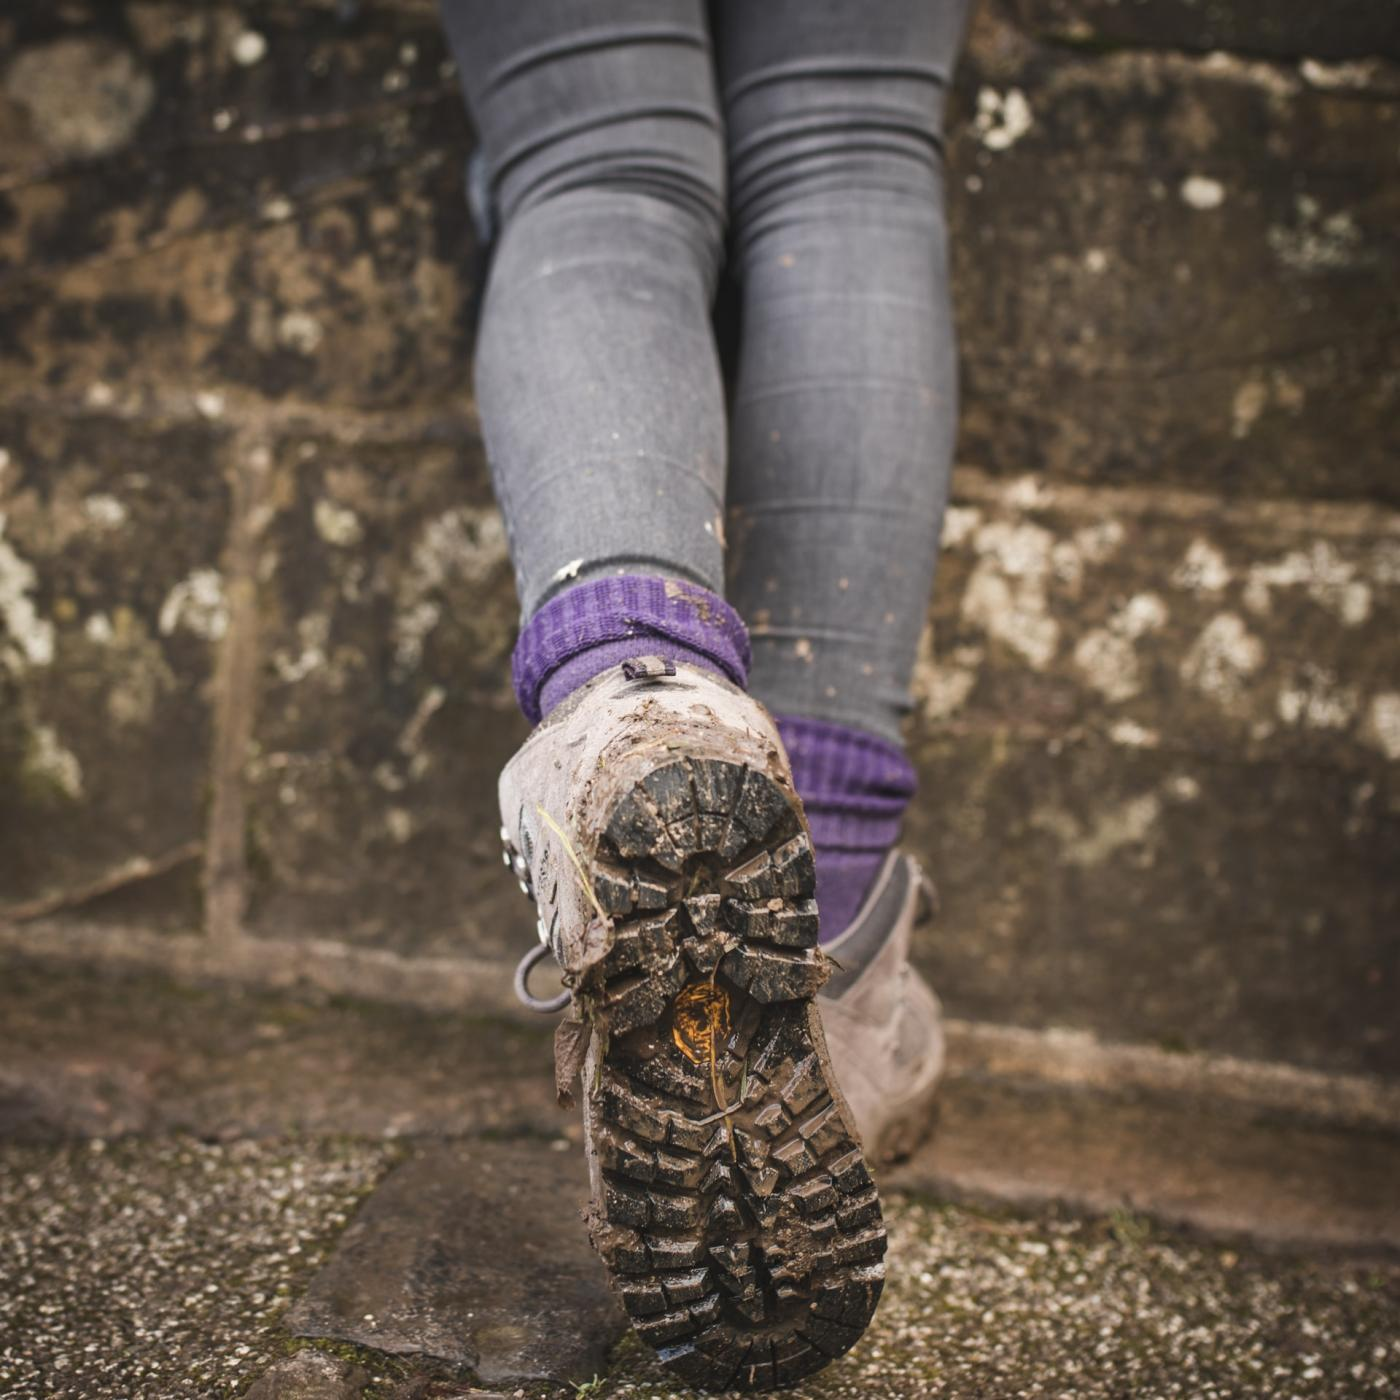 Mental Health Week: Get on your Muddy Boots!